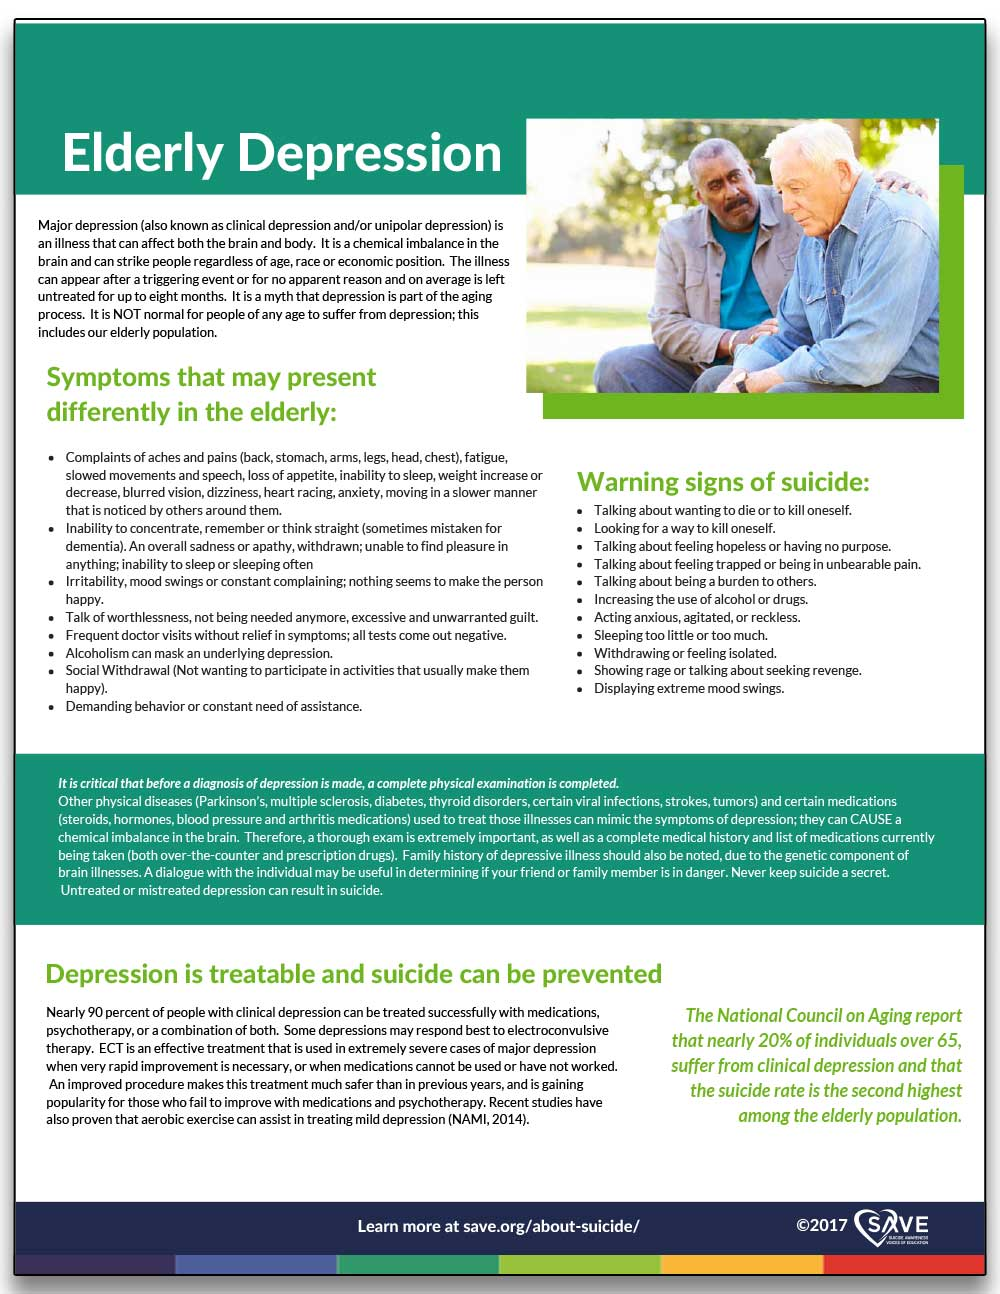 information sheet about elderly depression